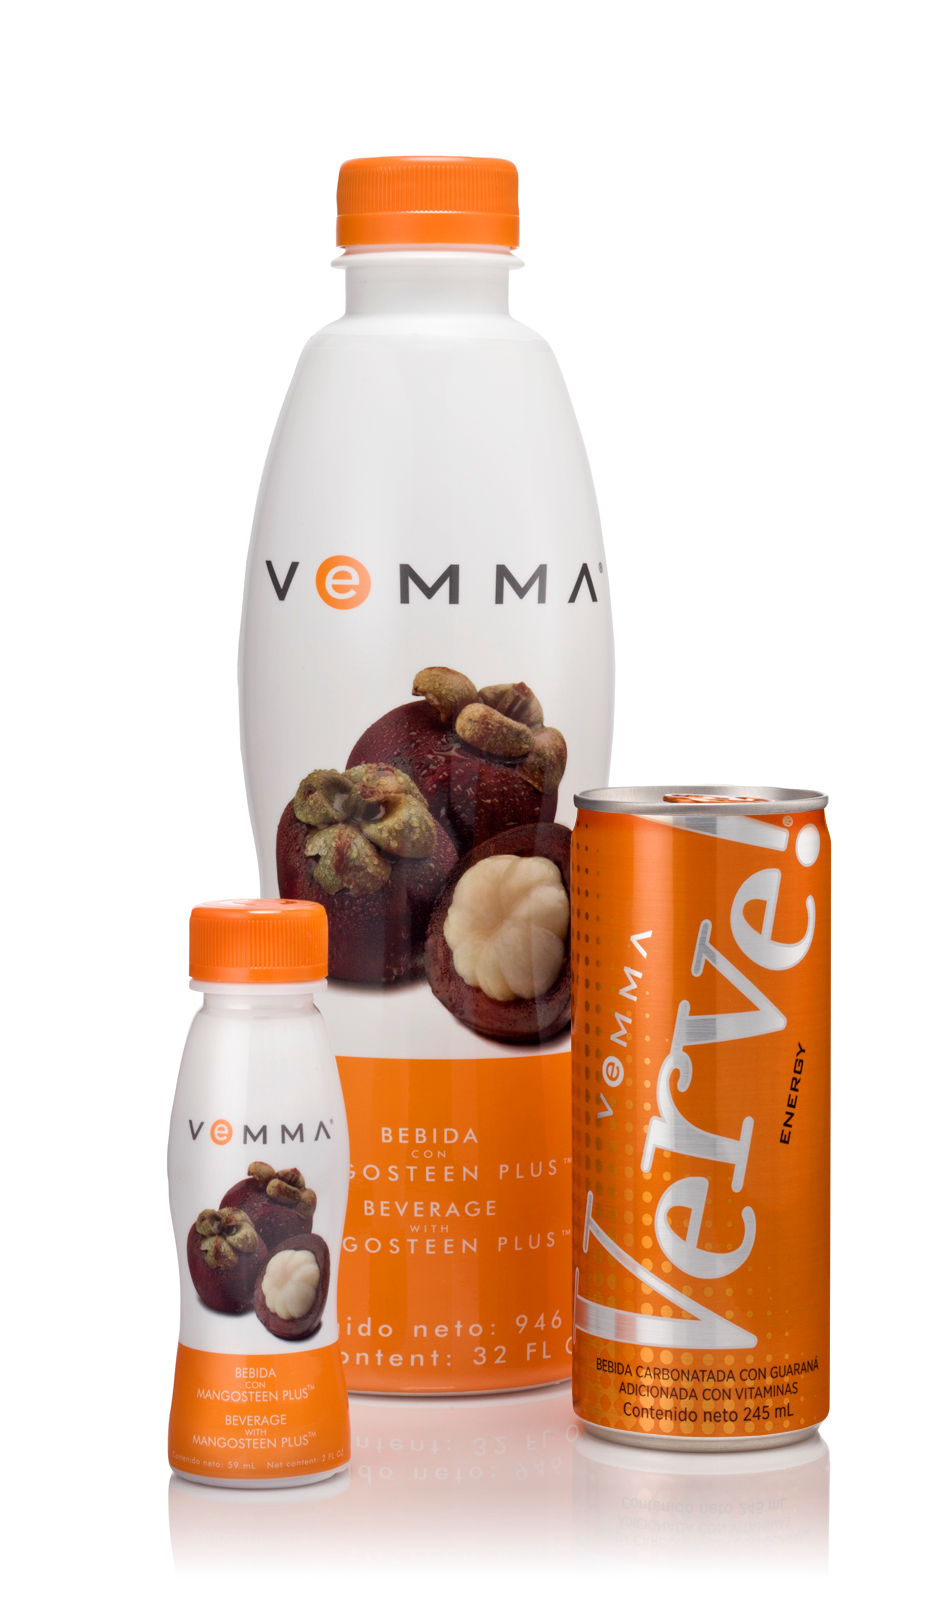 Vemma Mexico Product Offerings